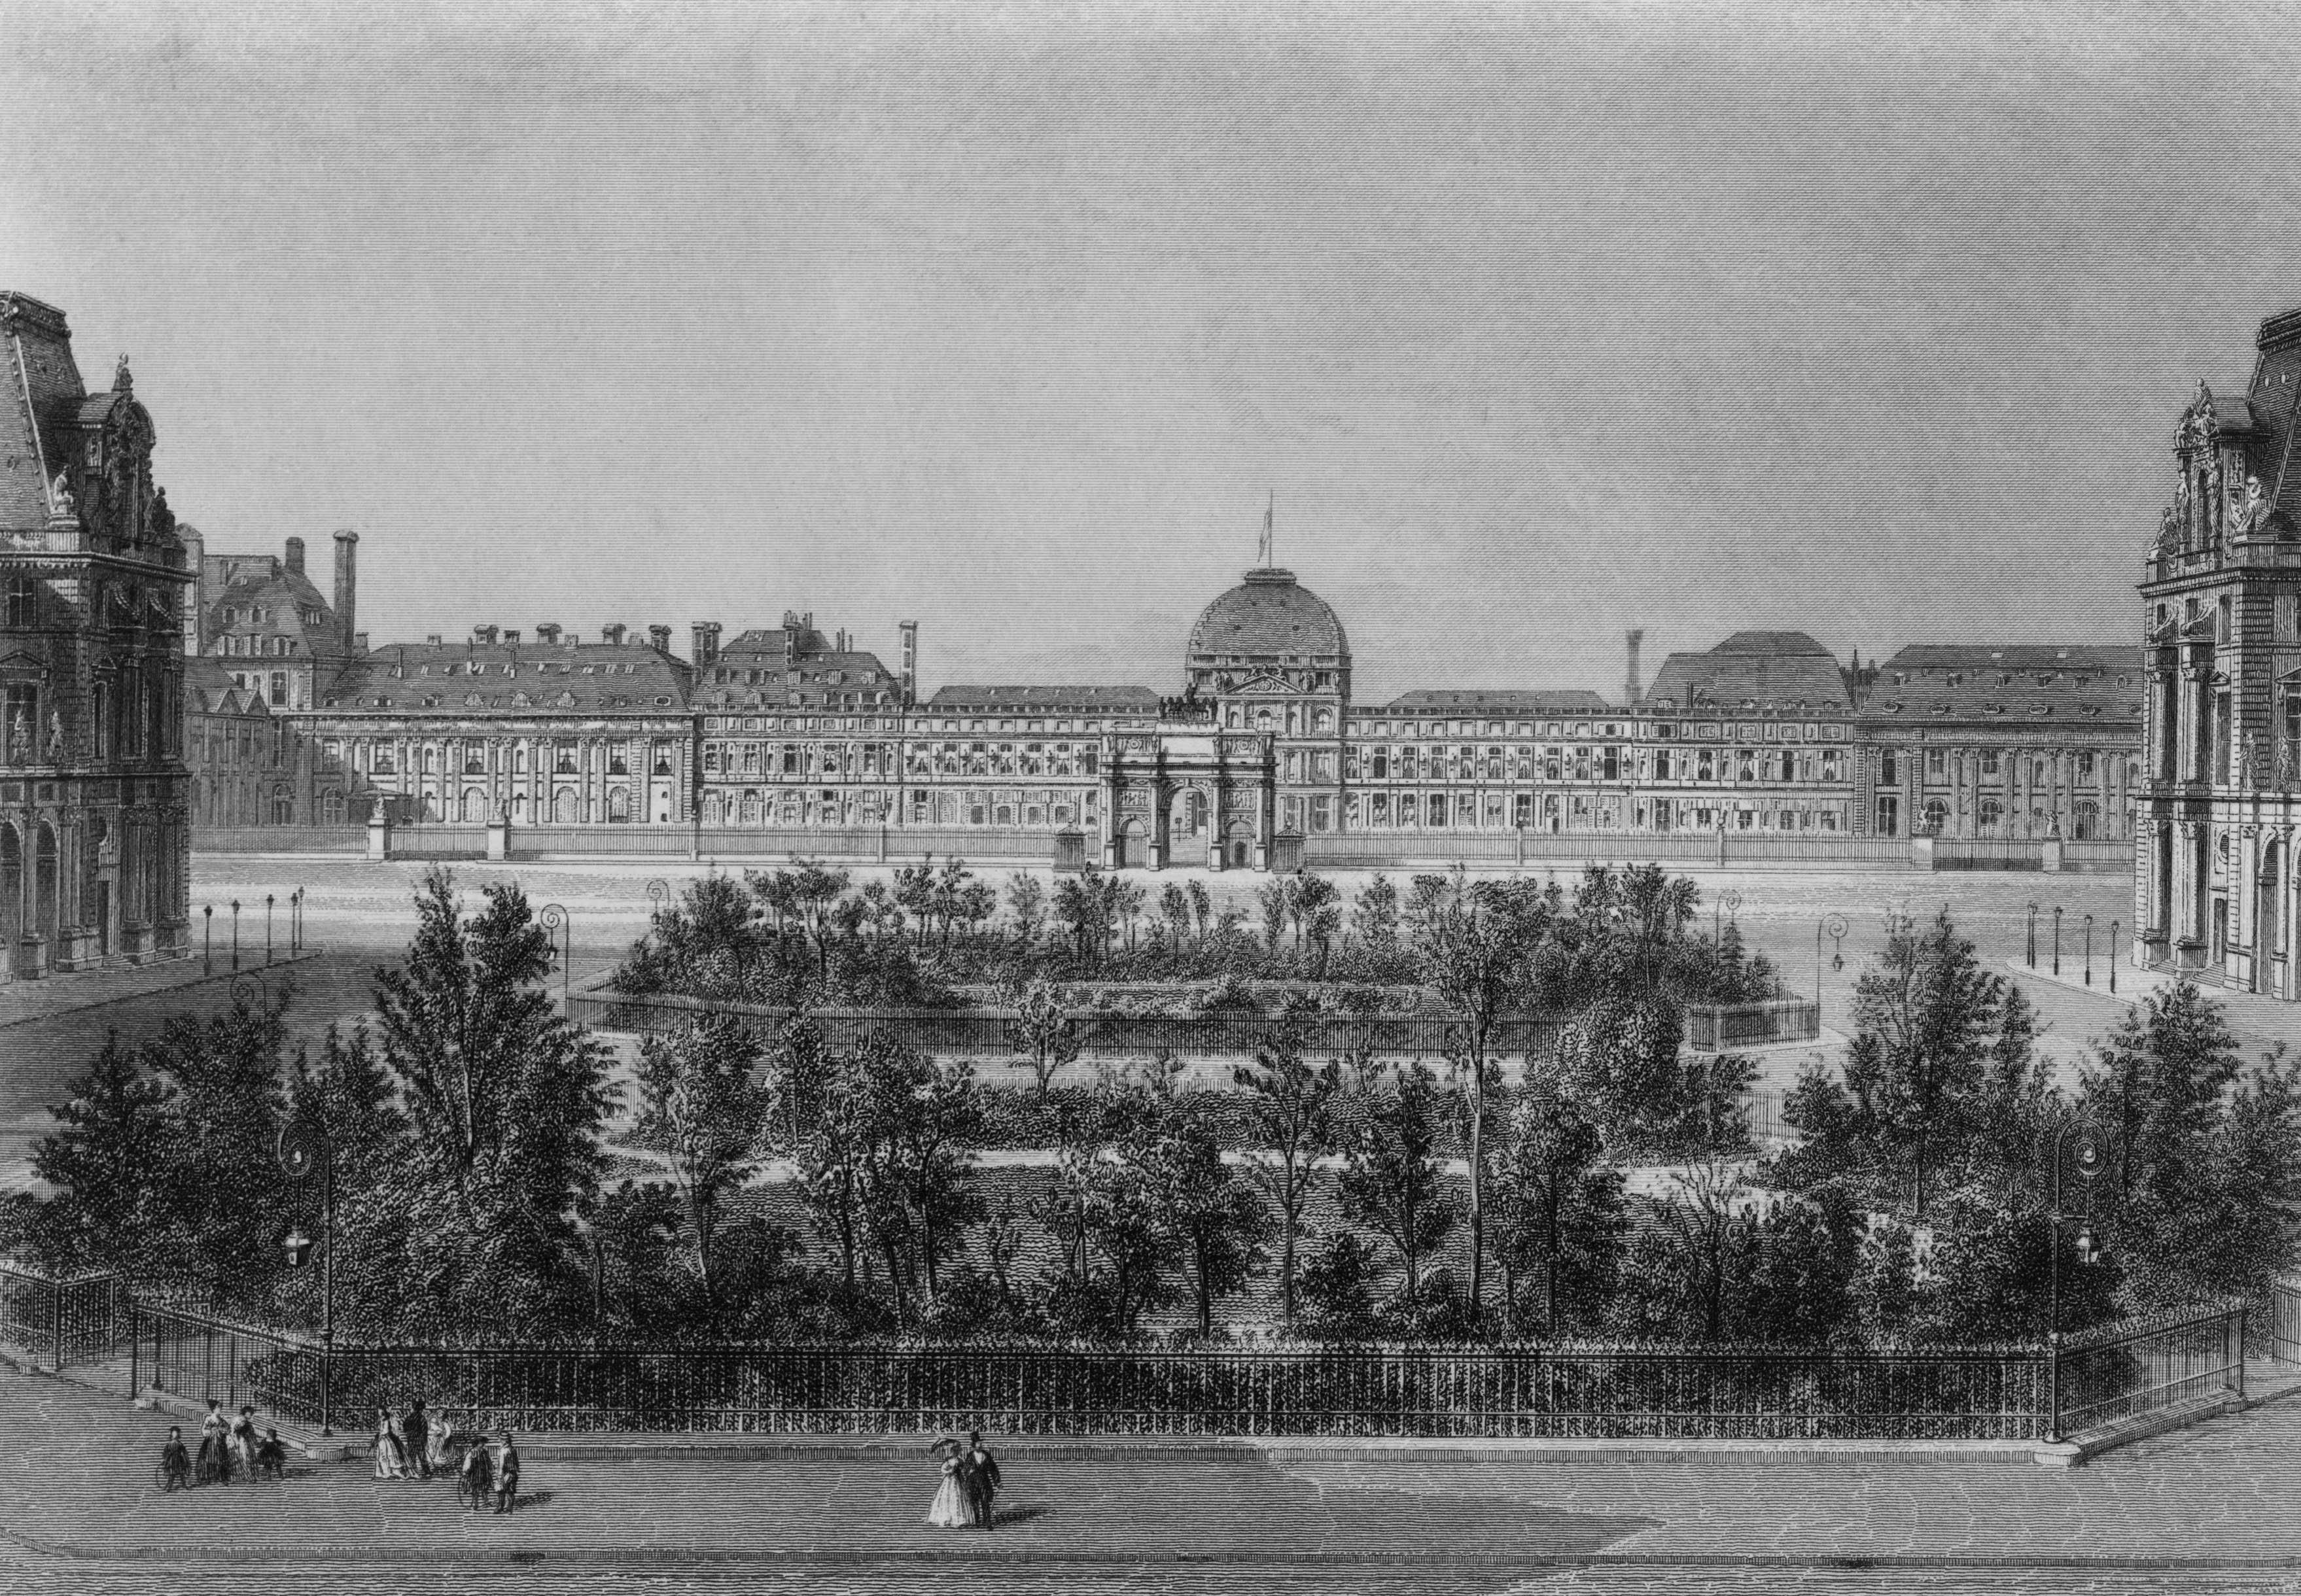 Tuileries Palace in Paris, France, old engraving